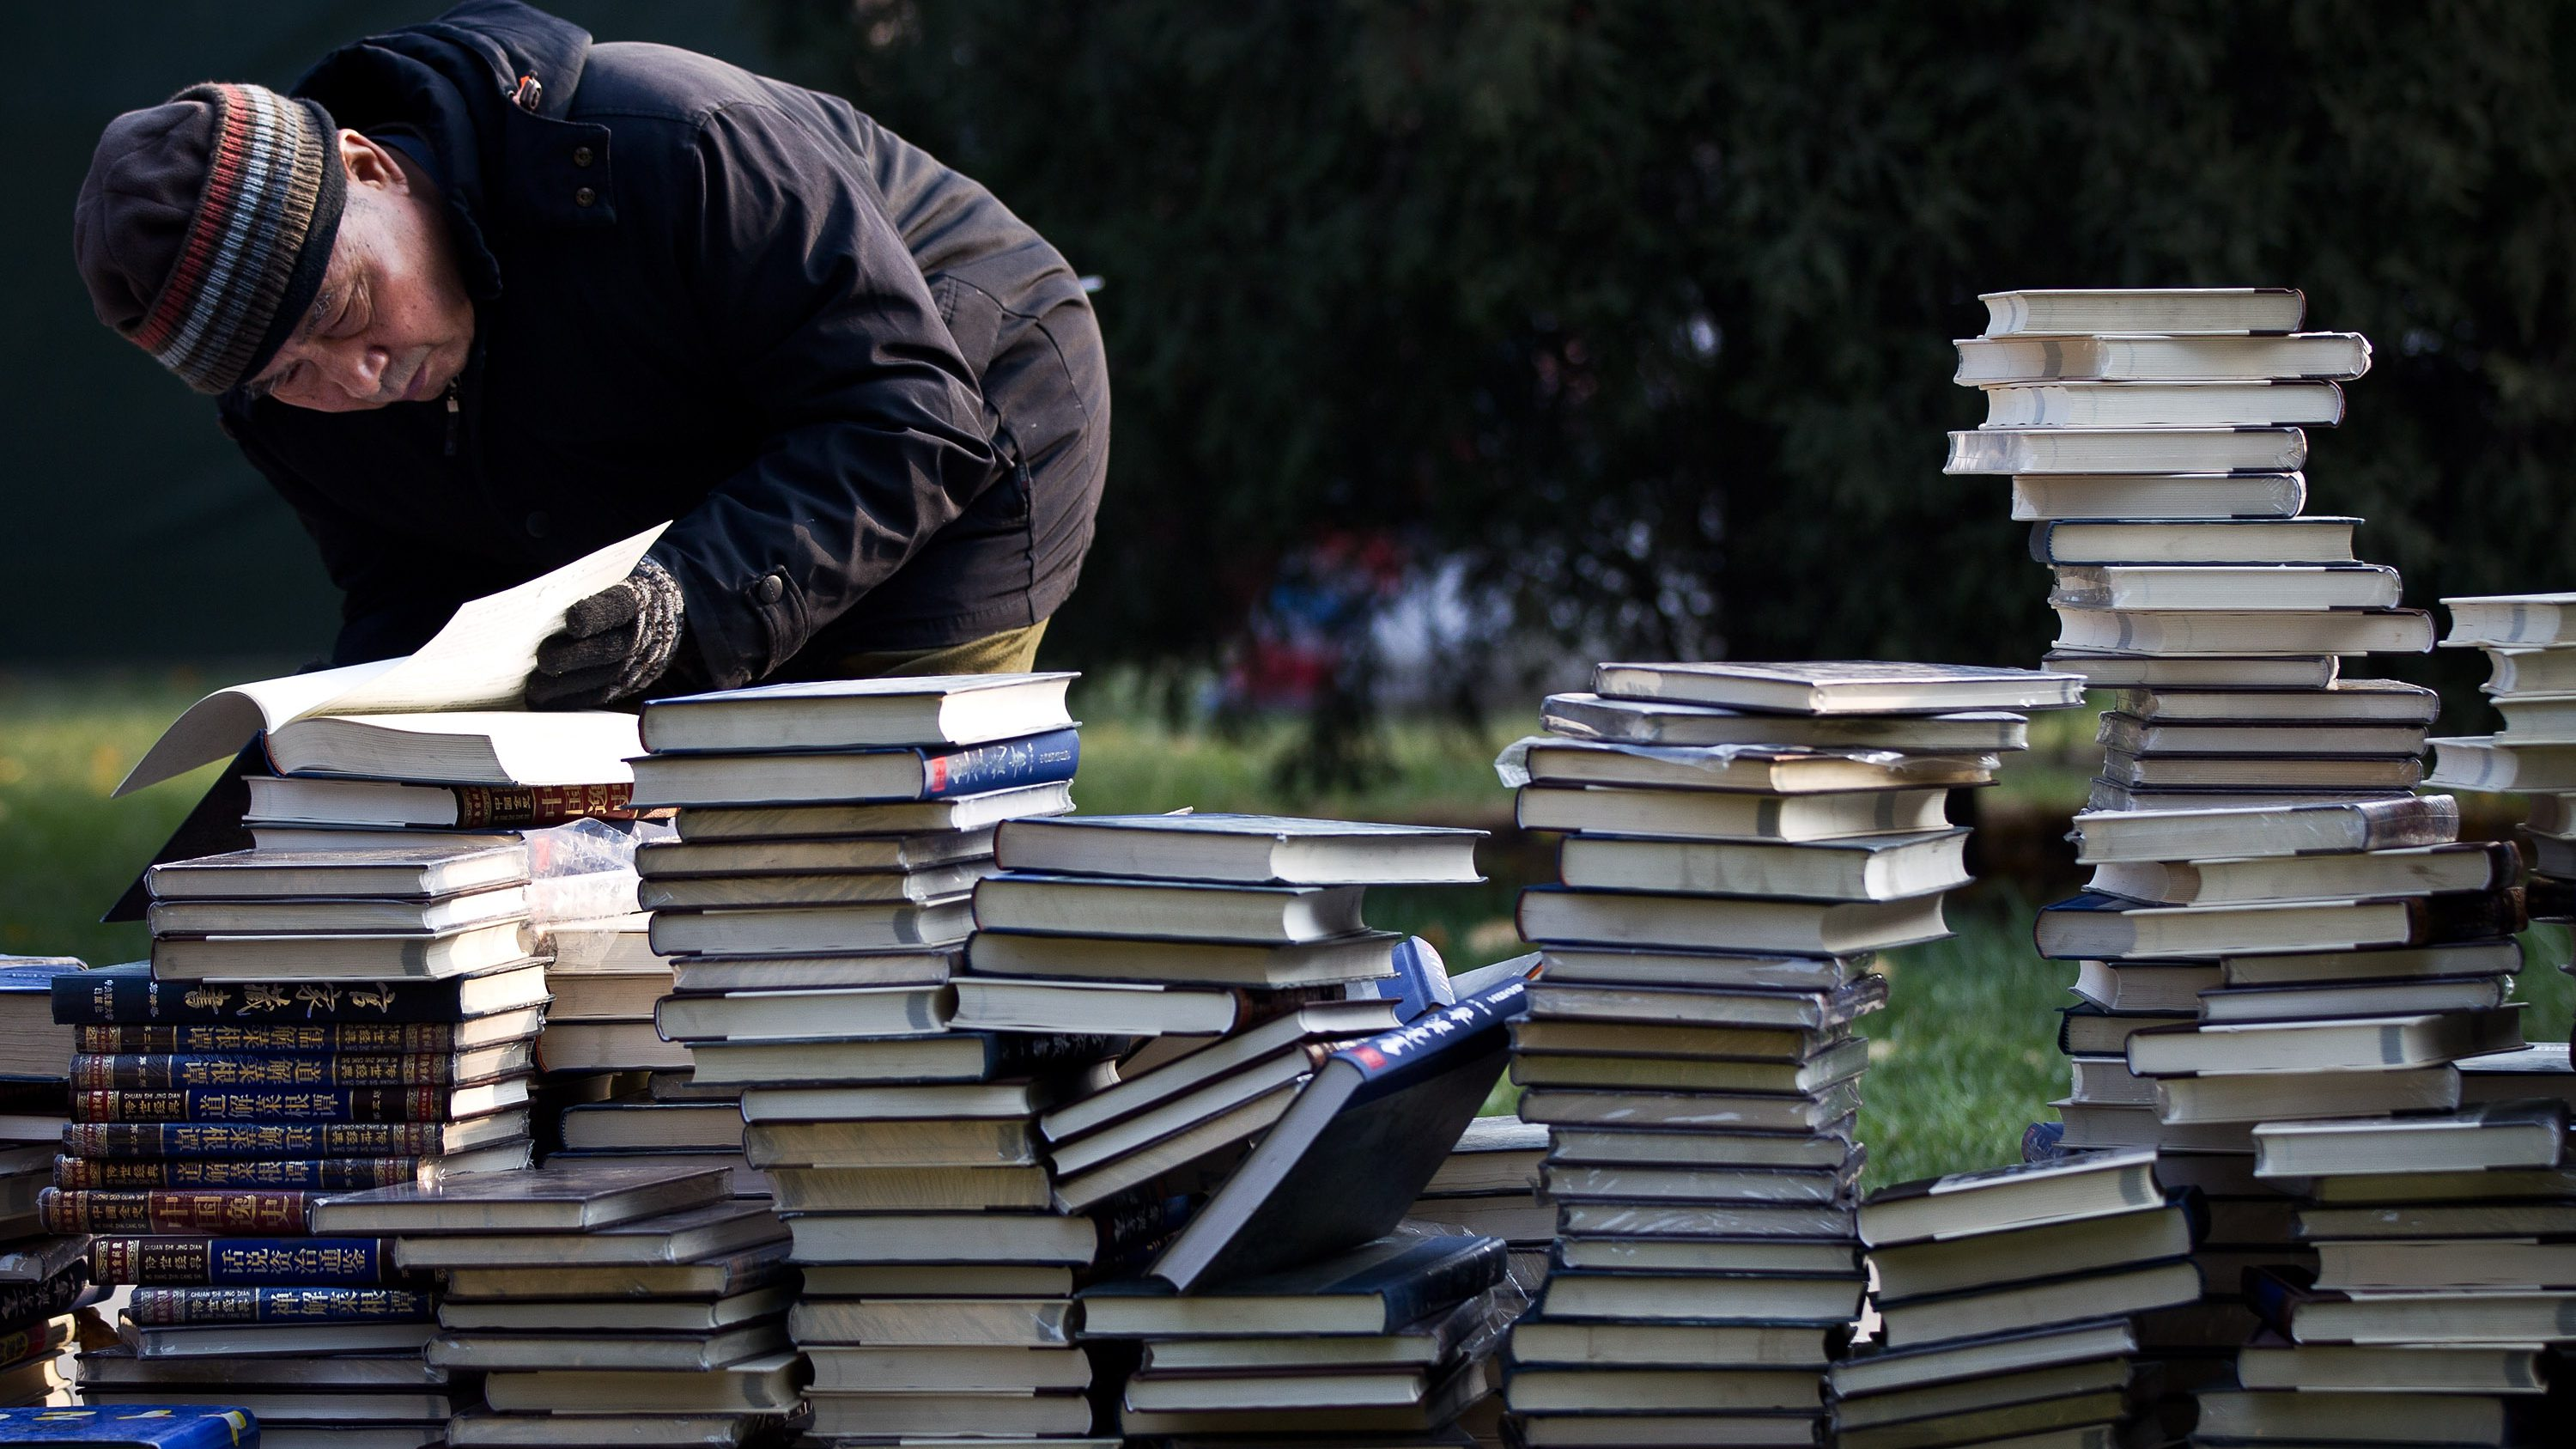 An elderly man browses one of books piled up on the grass for sale during the Winter Book Fair held at Ditan Park in Beijing, Sunday, Nov. 27, 2011. (AP Photo/Andy Wong)